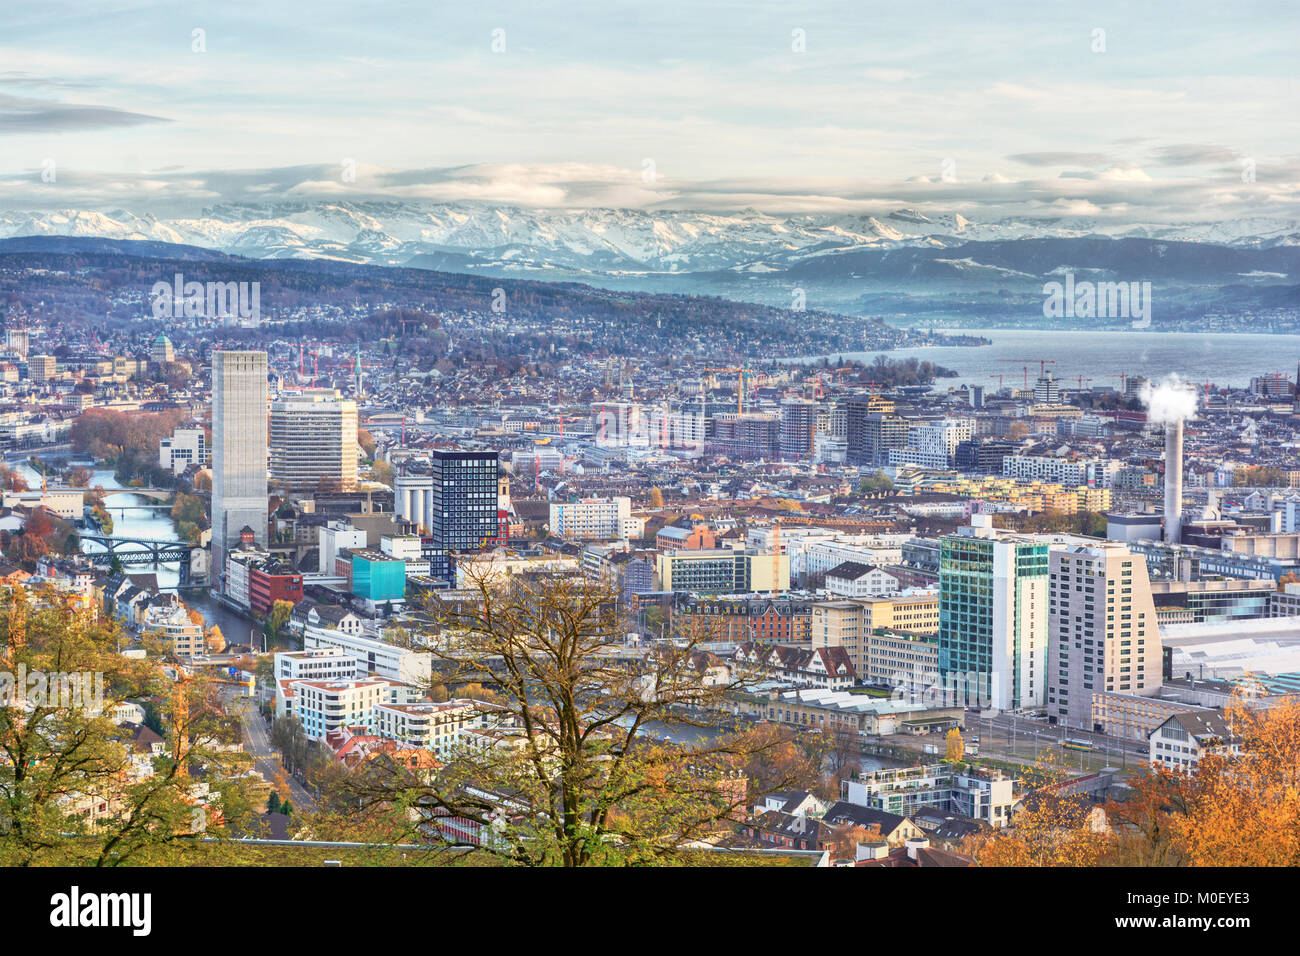 Cityscape of Zurich (Switzerland), HDR-technique - Stock Image